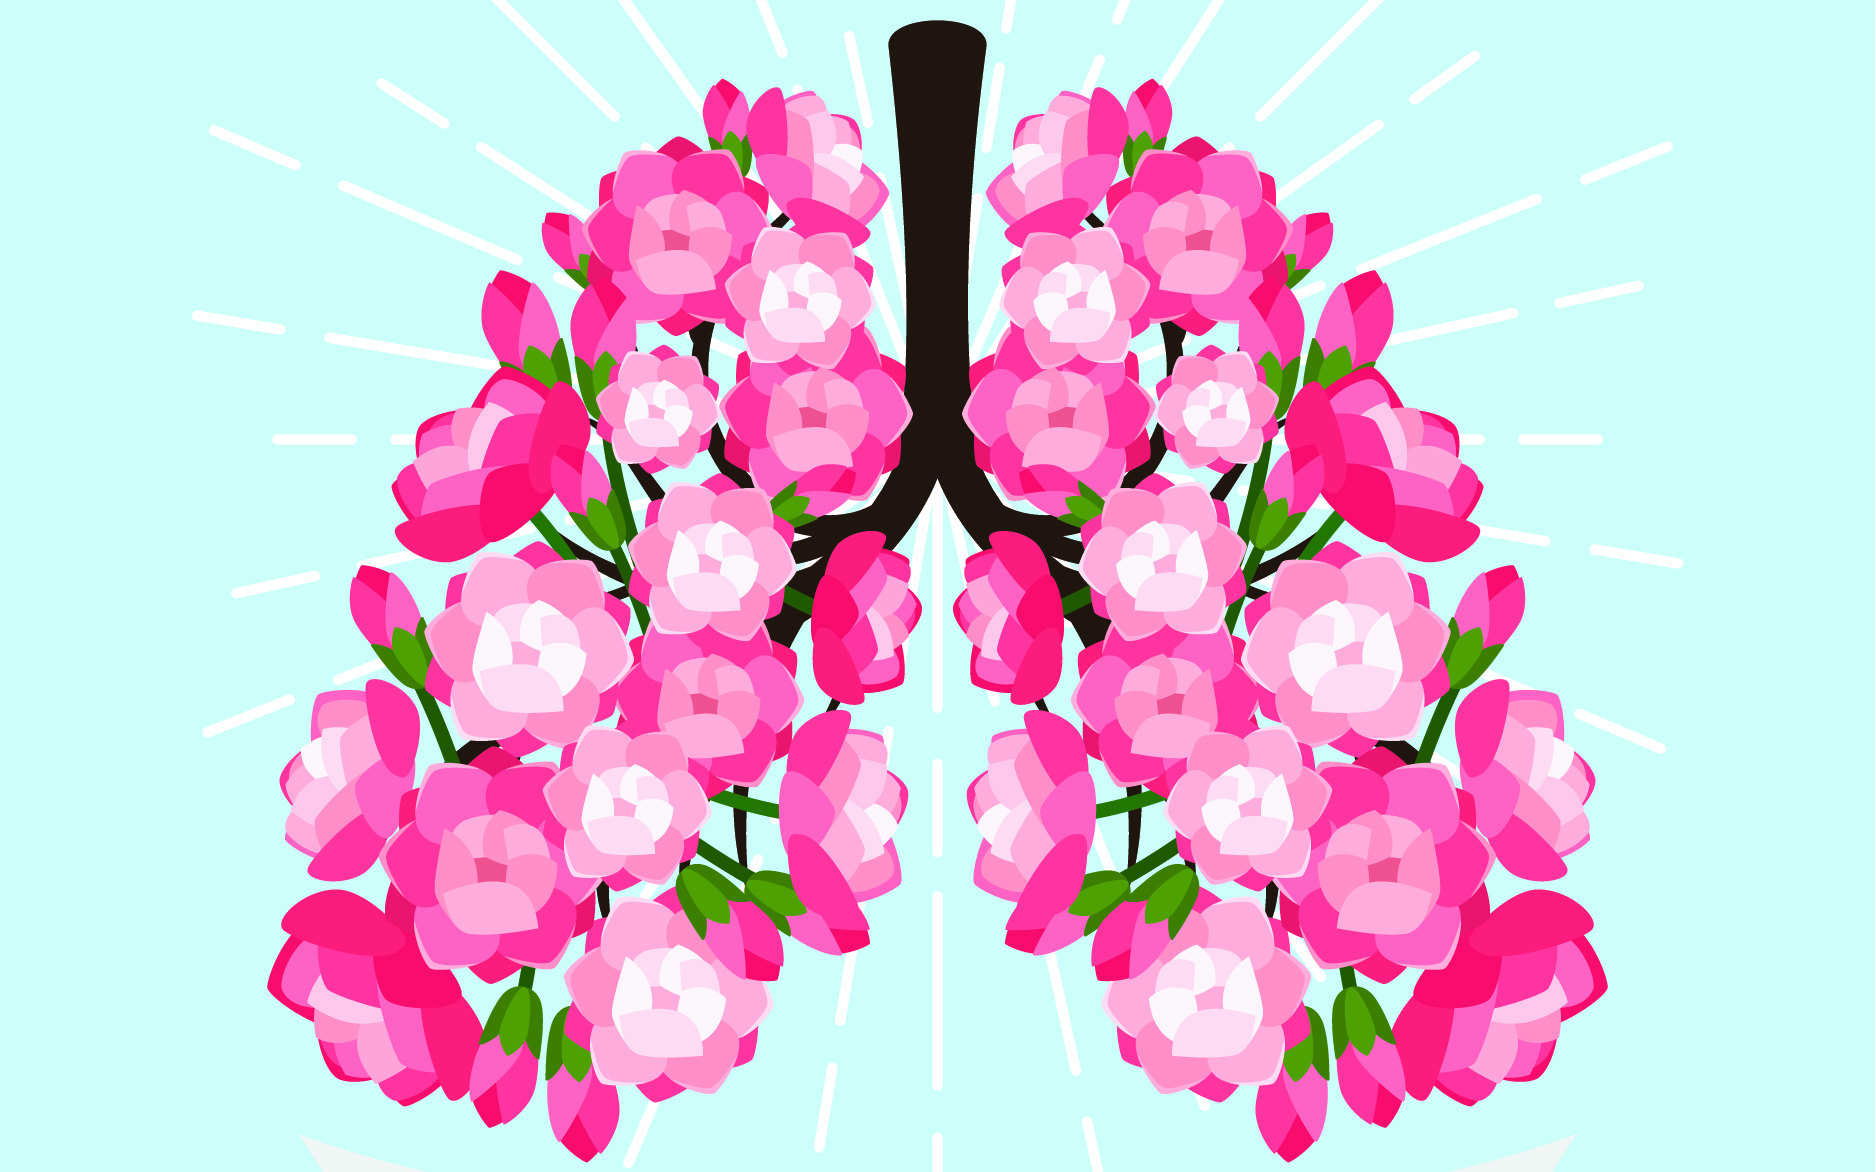 Blooming lungs - meditation begins with the breath